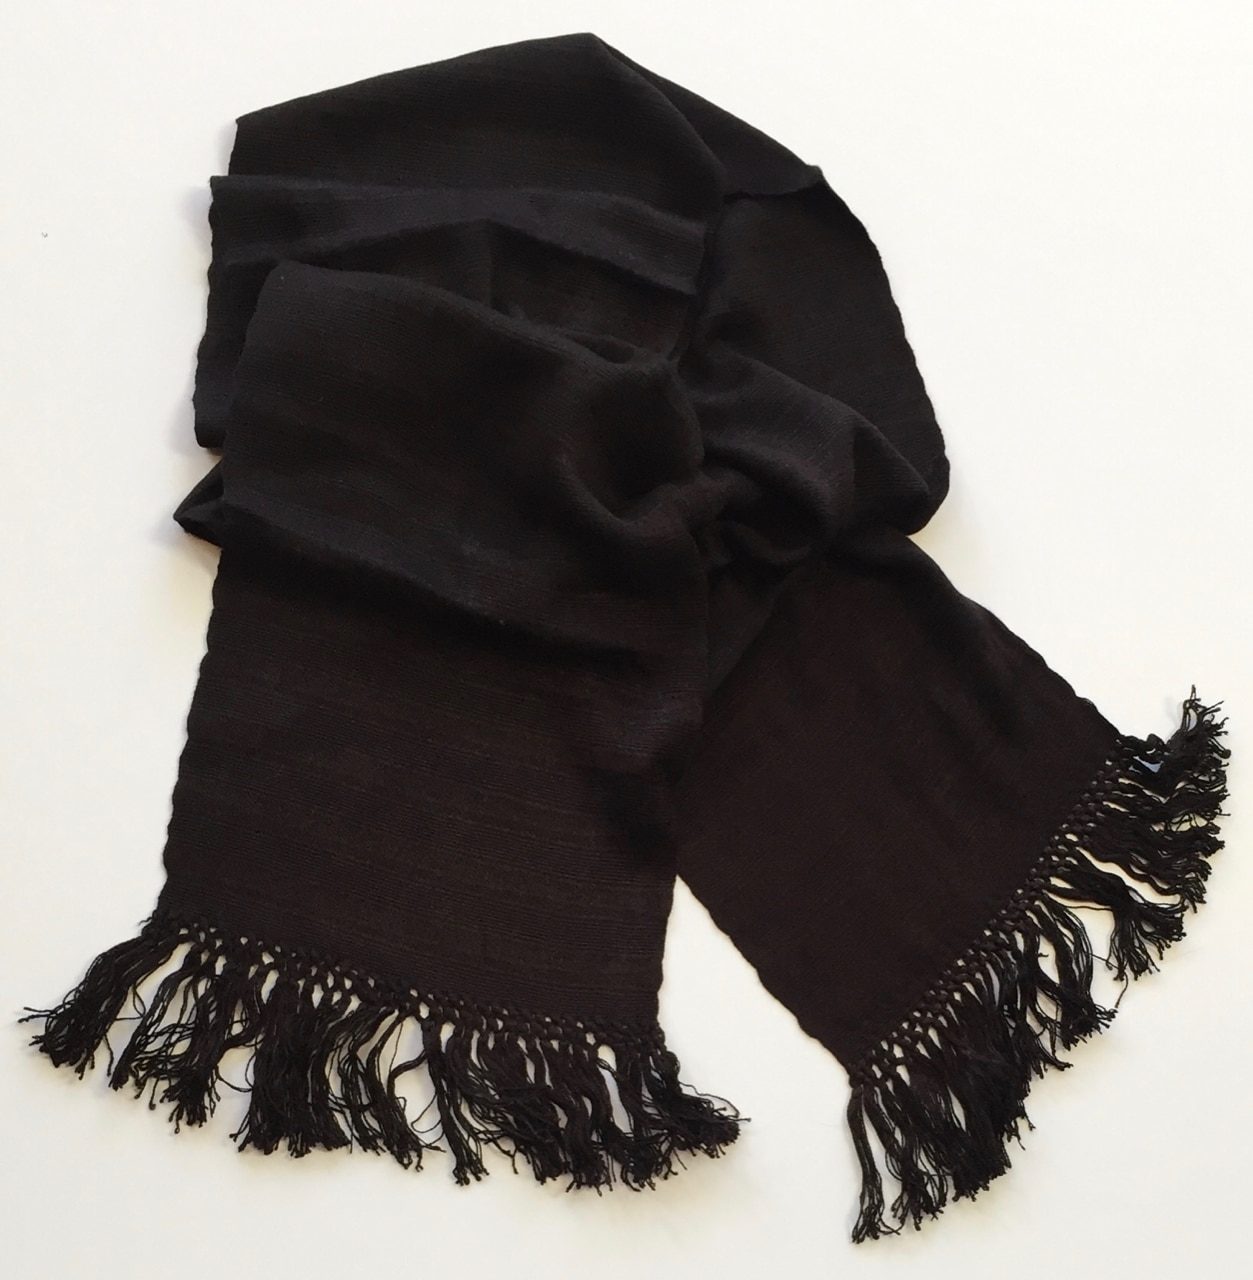 Black - Lightweight Bamboo Handwoven Scarf, Open Weave, 8